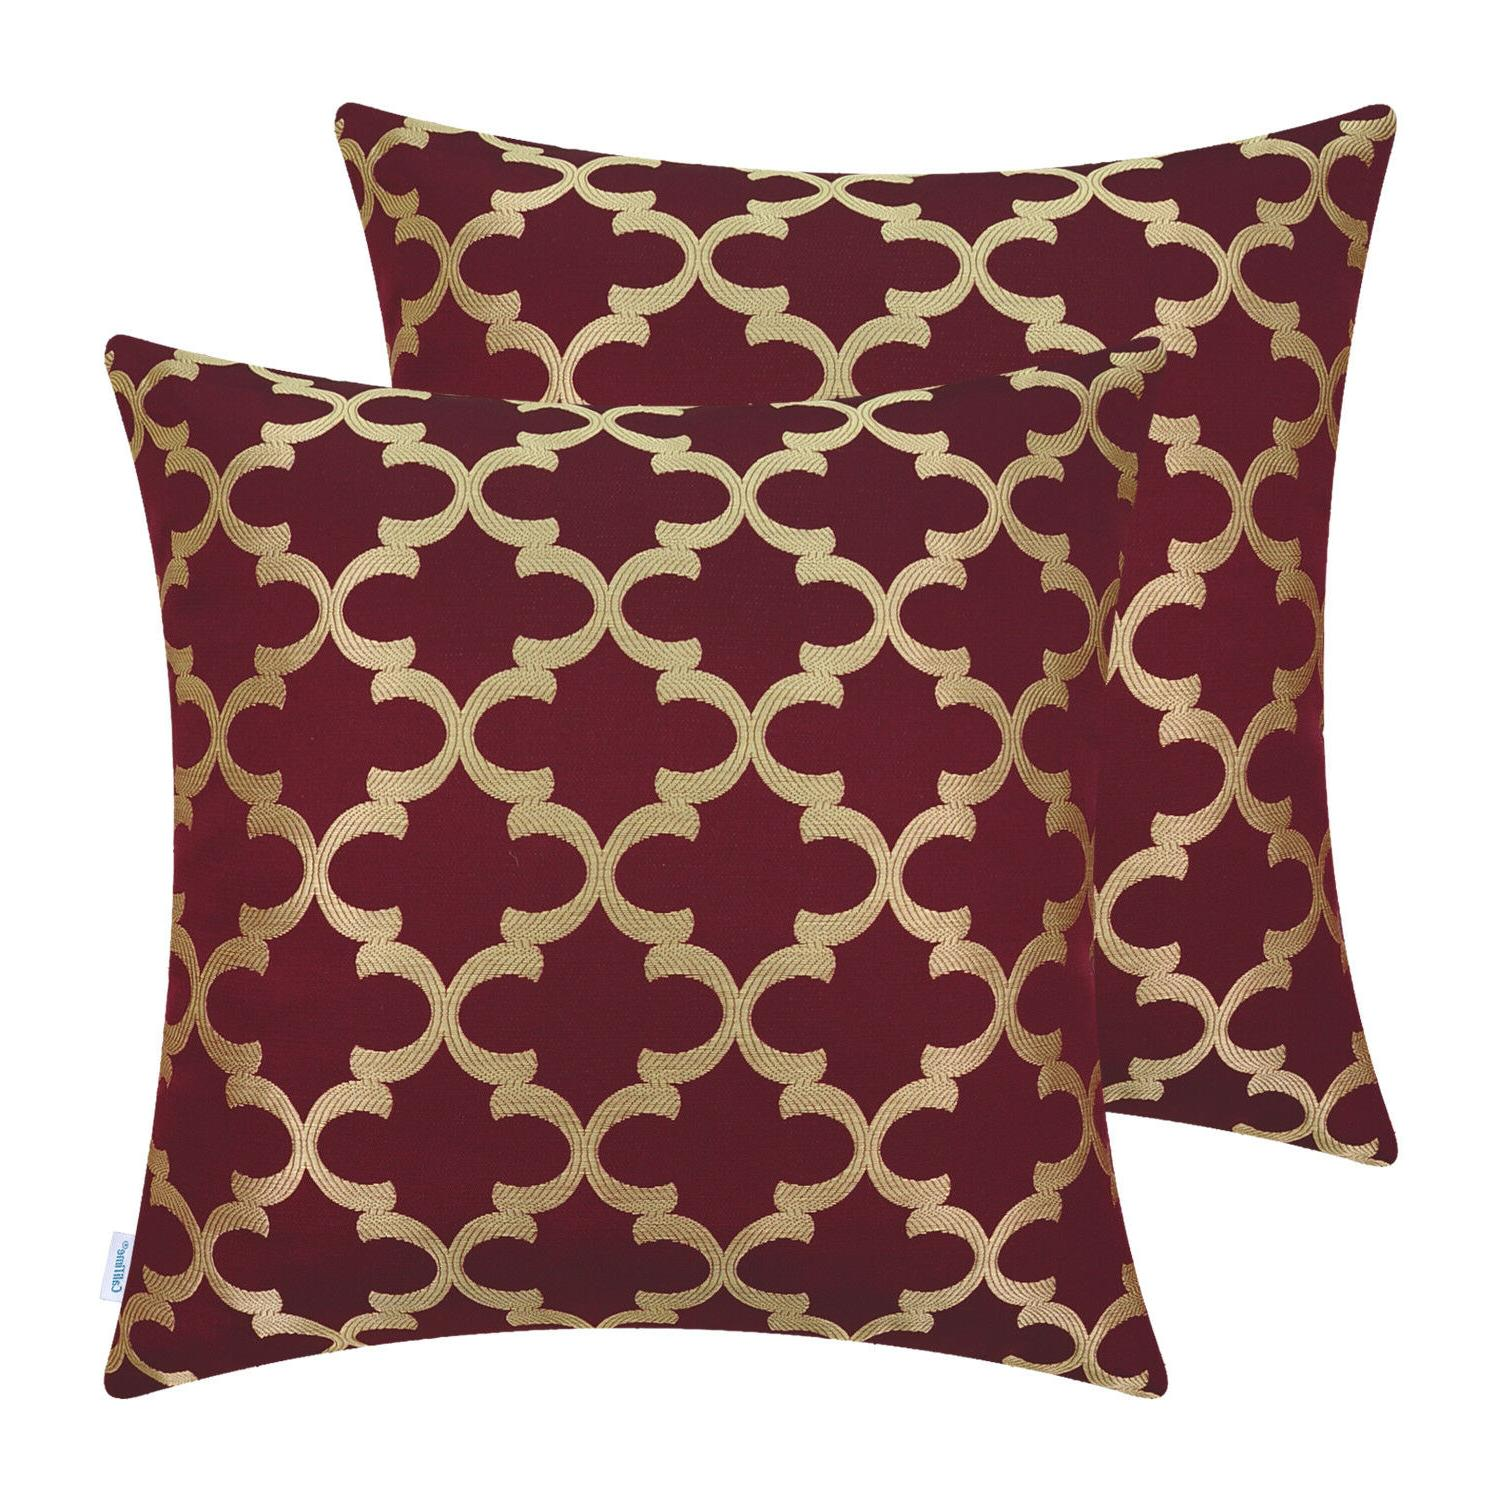 2Pcs Pillows Cushion Shells Accent Geometric Sofa